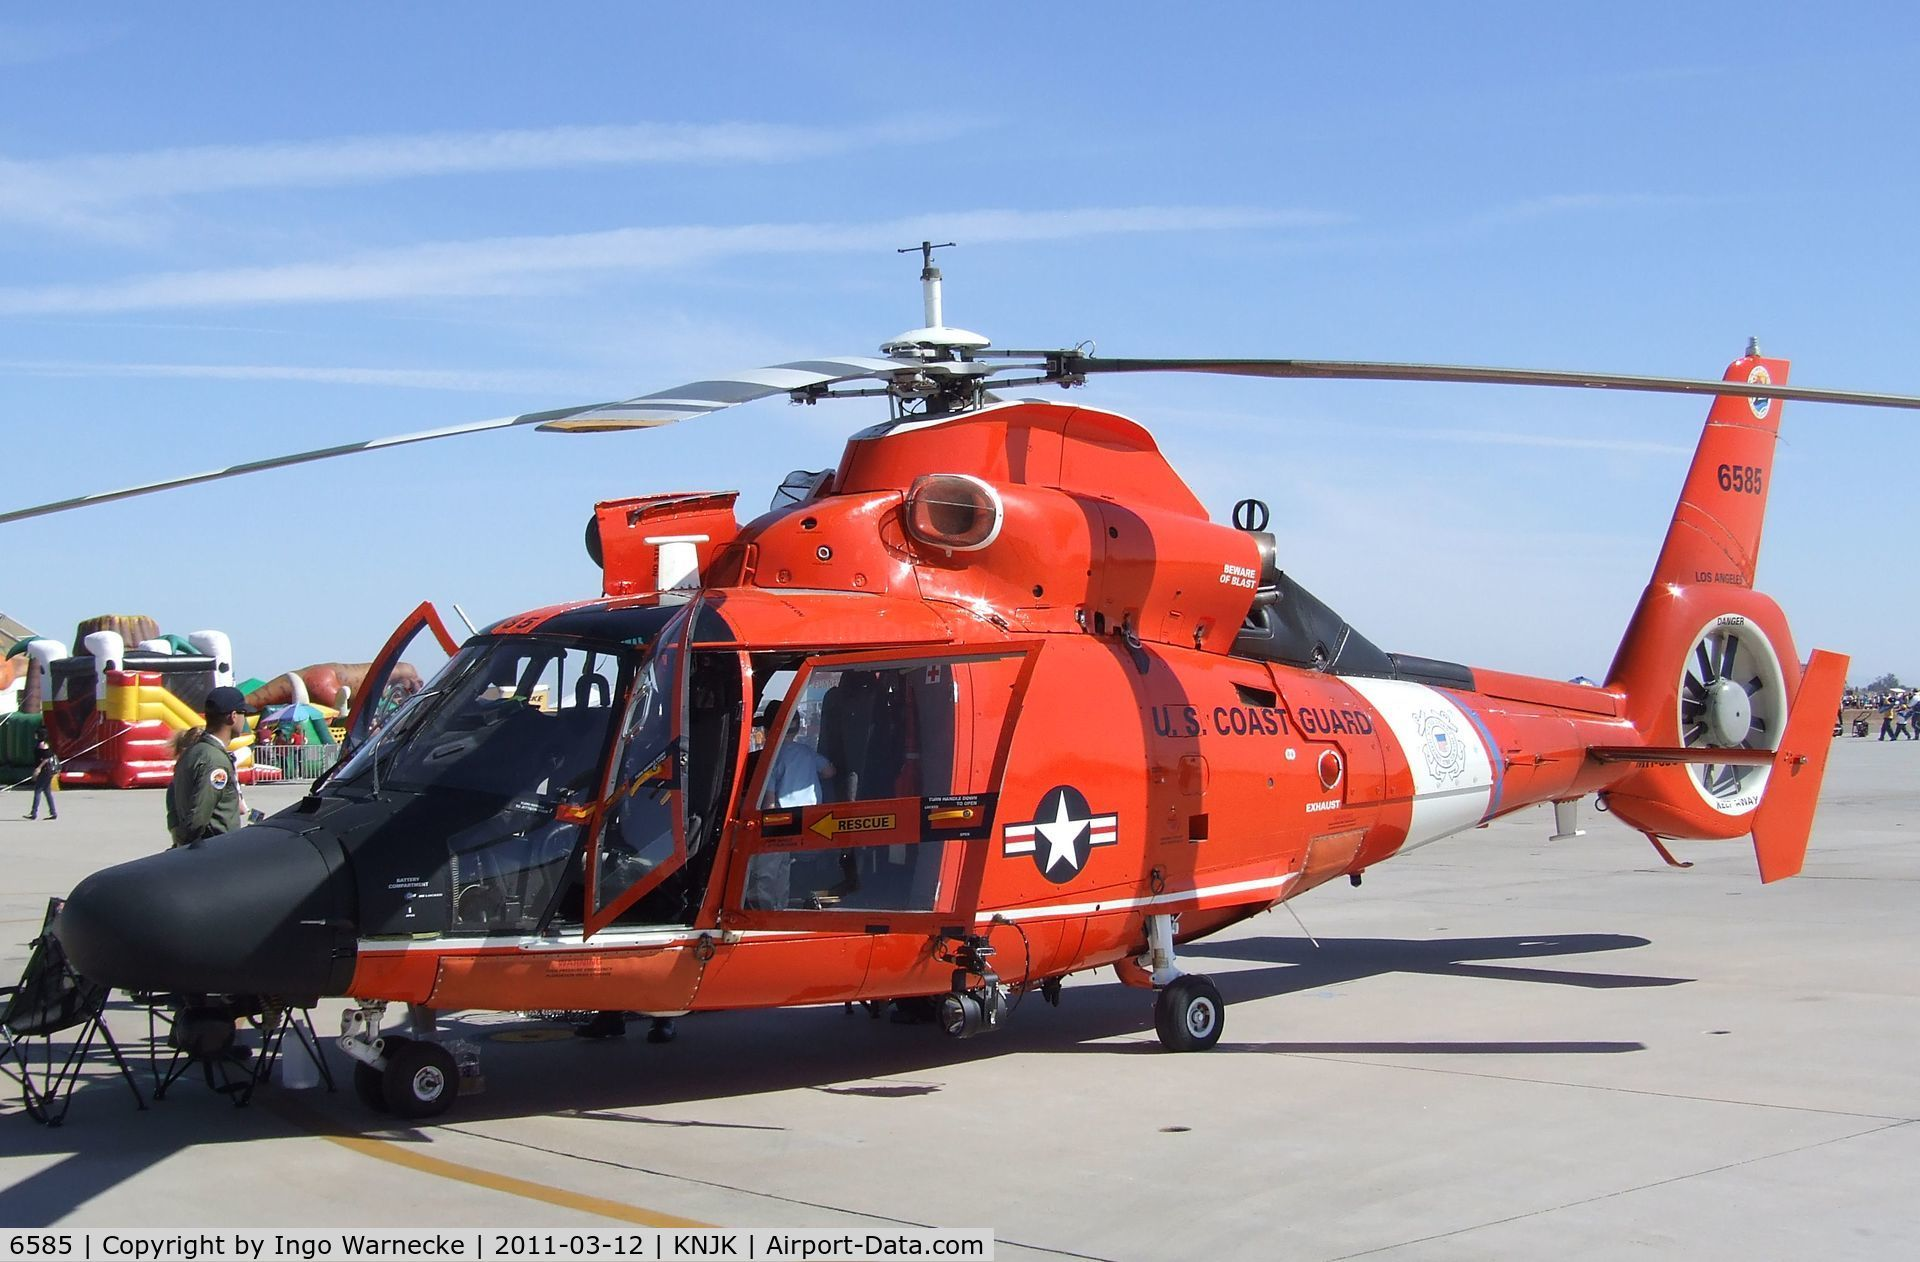 6585, 1988 Aérospatiale HH-65C Dauphin C/N 6284, Aerospatiale HH-65C Dolphin of the USCG at the 2011 airshow at El Centro NAS, CA